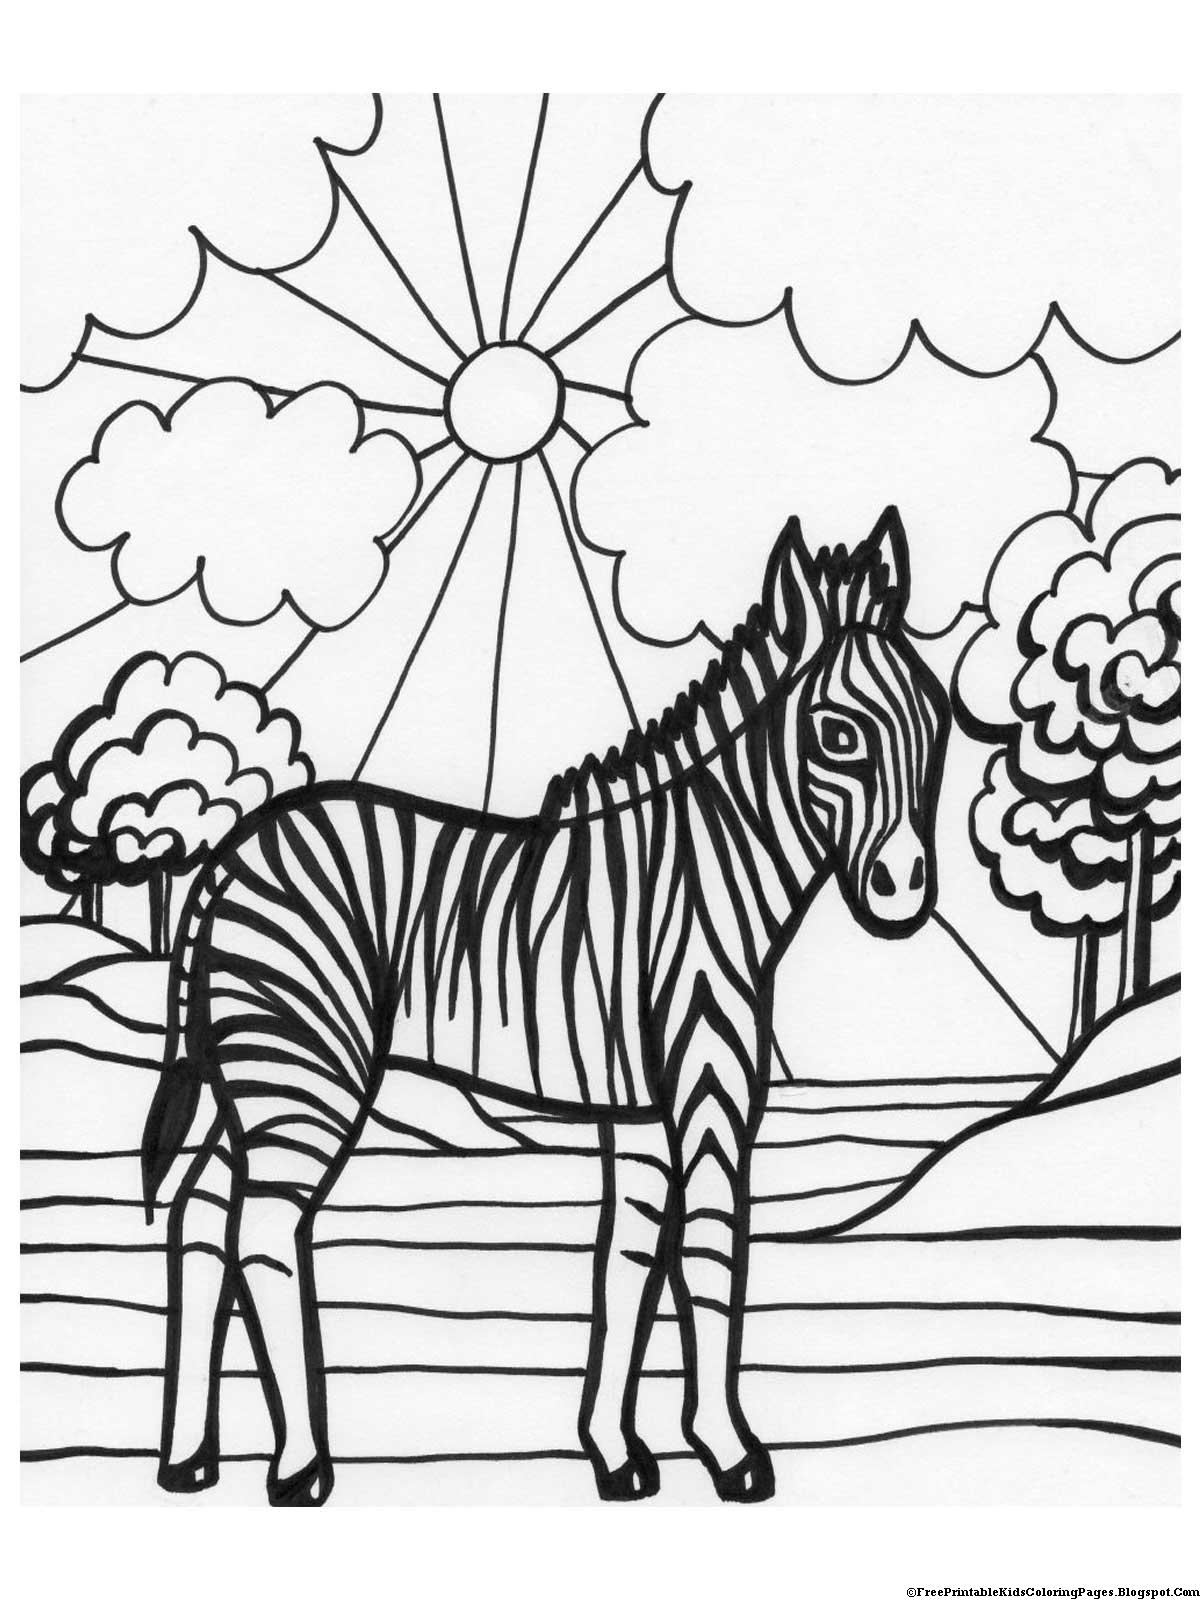 childrens colouring pictures pets coloring pages best coloring pages for kids childrens pictures colouring